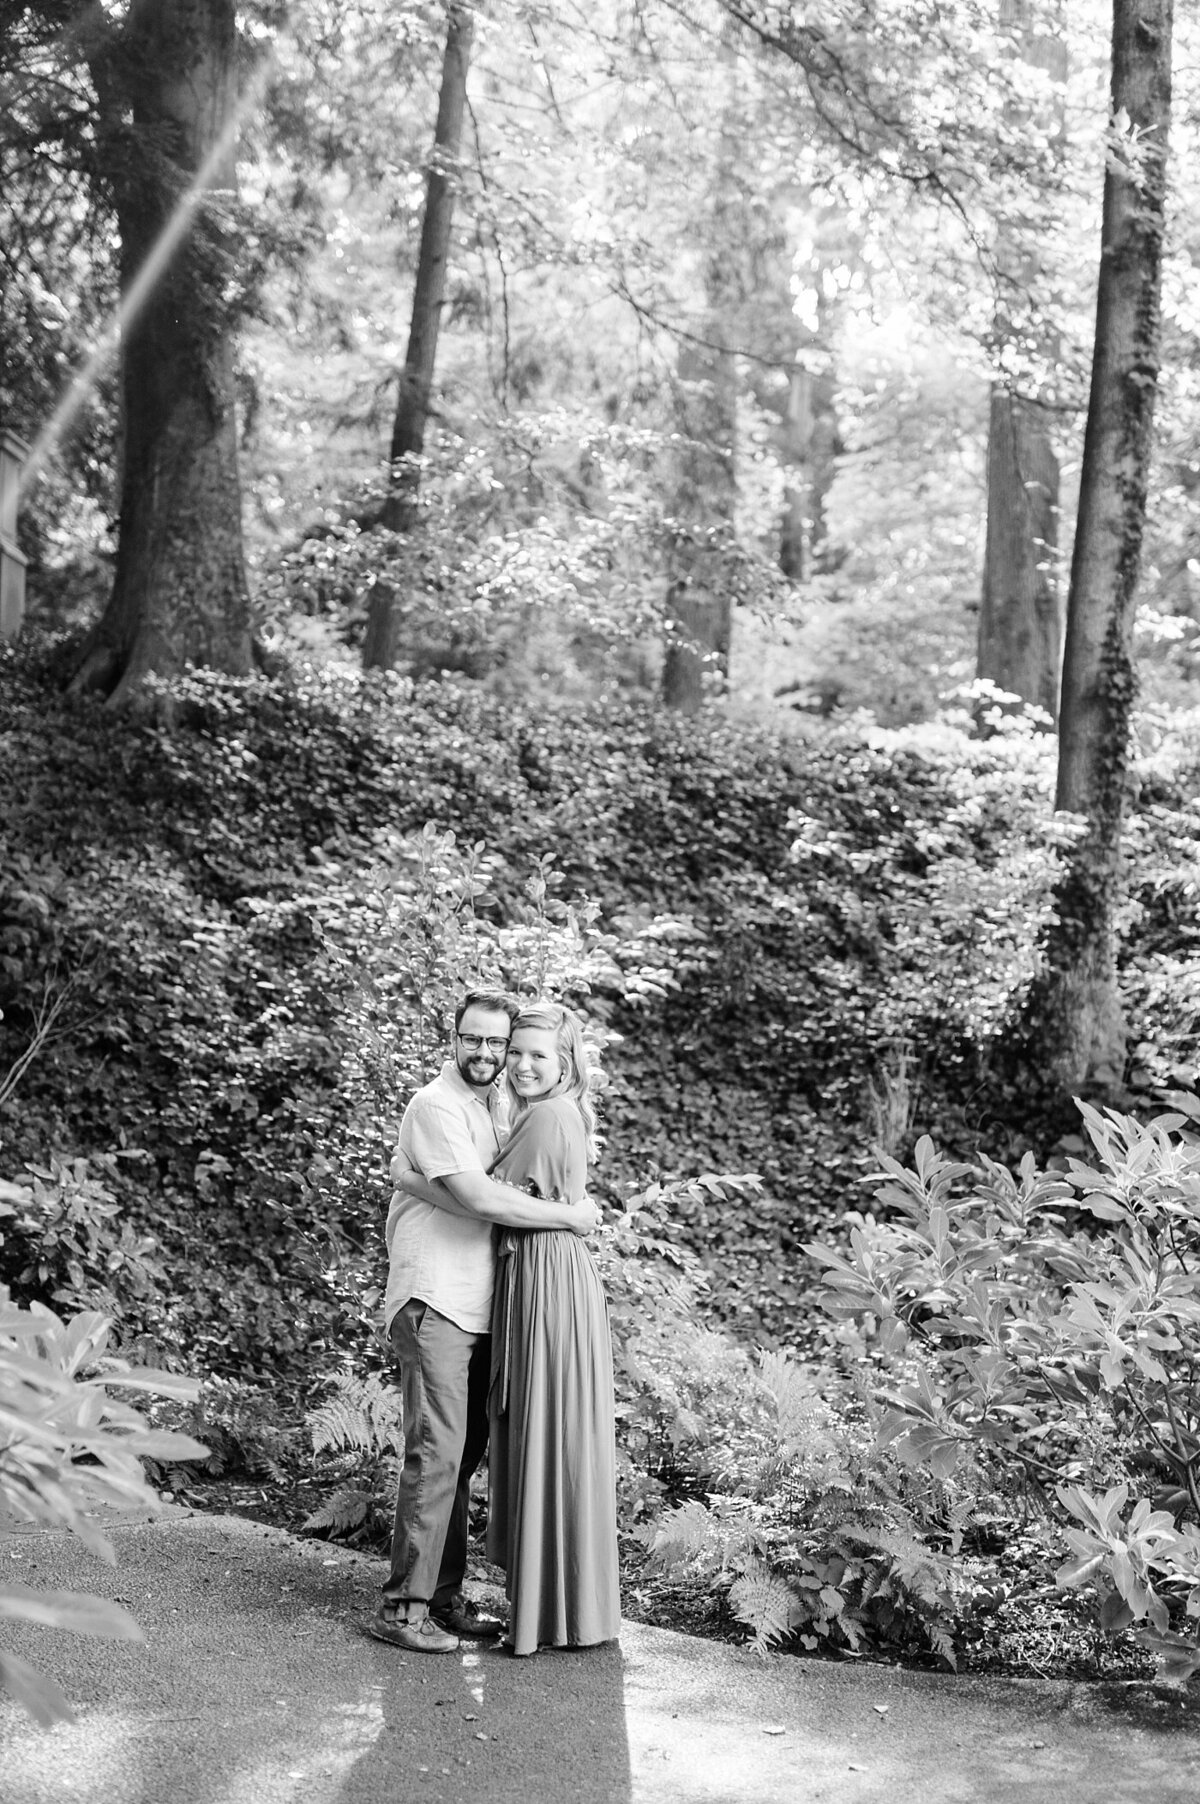 cator-woolford-gardens-engagement-wedding-photographer-laura-barnes-photo-shackelford-22